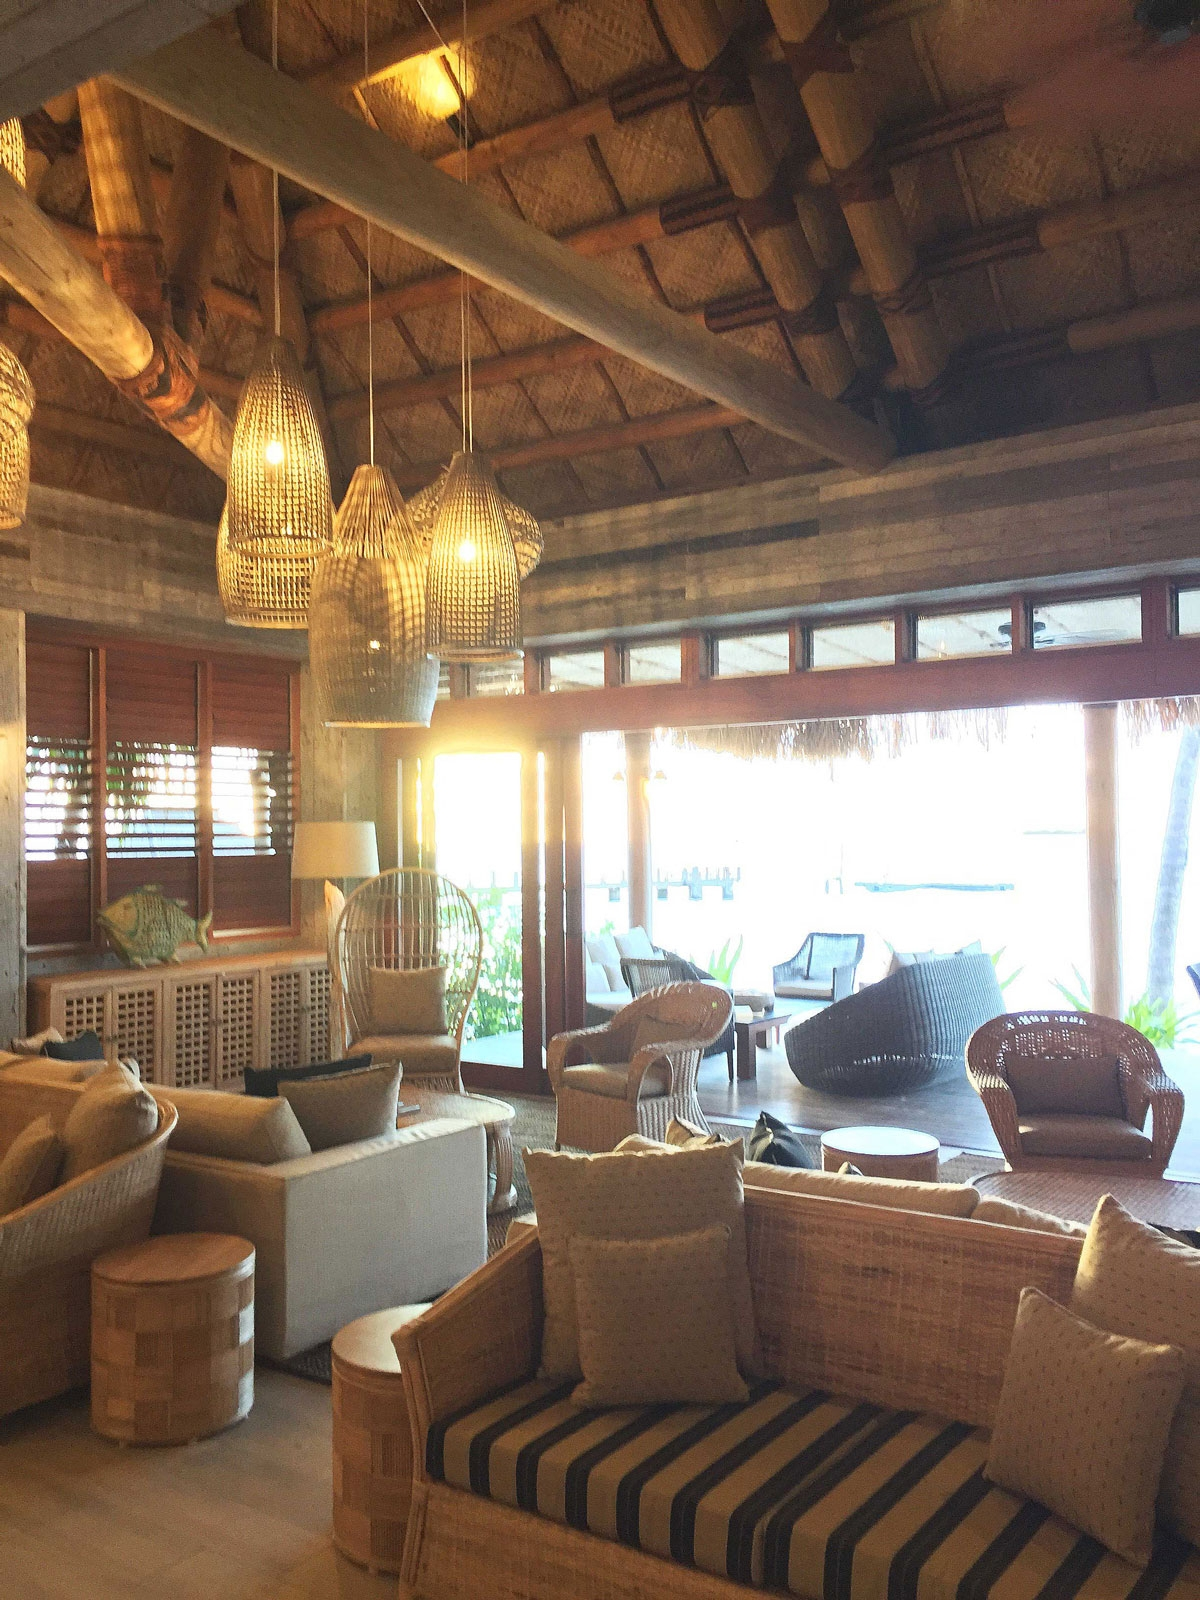 The interior of the resort bar features wicker furniture and large hanging wicker light fixtures